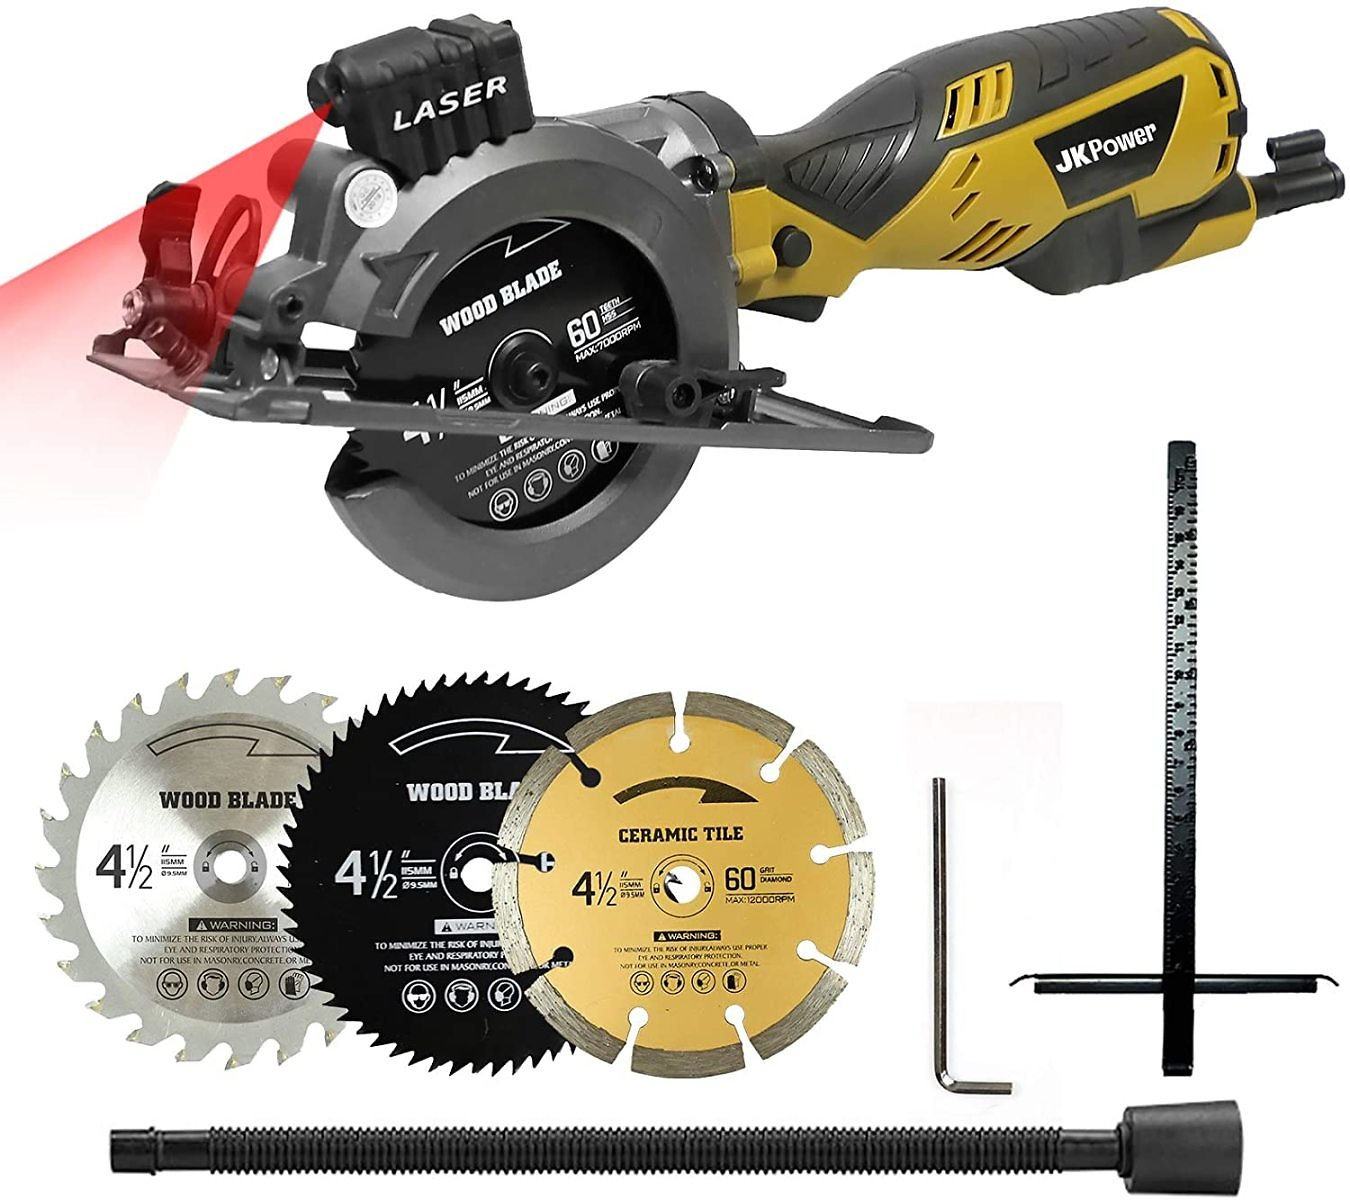 Mini Circular Saw with Laser Guide, 3 Blades(4-1/2